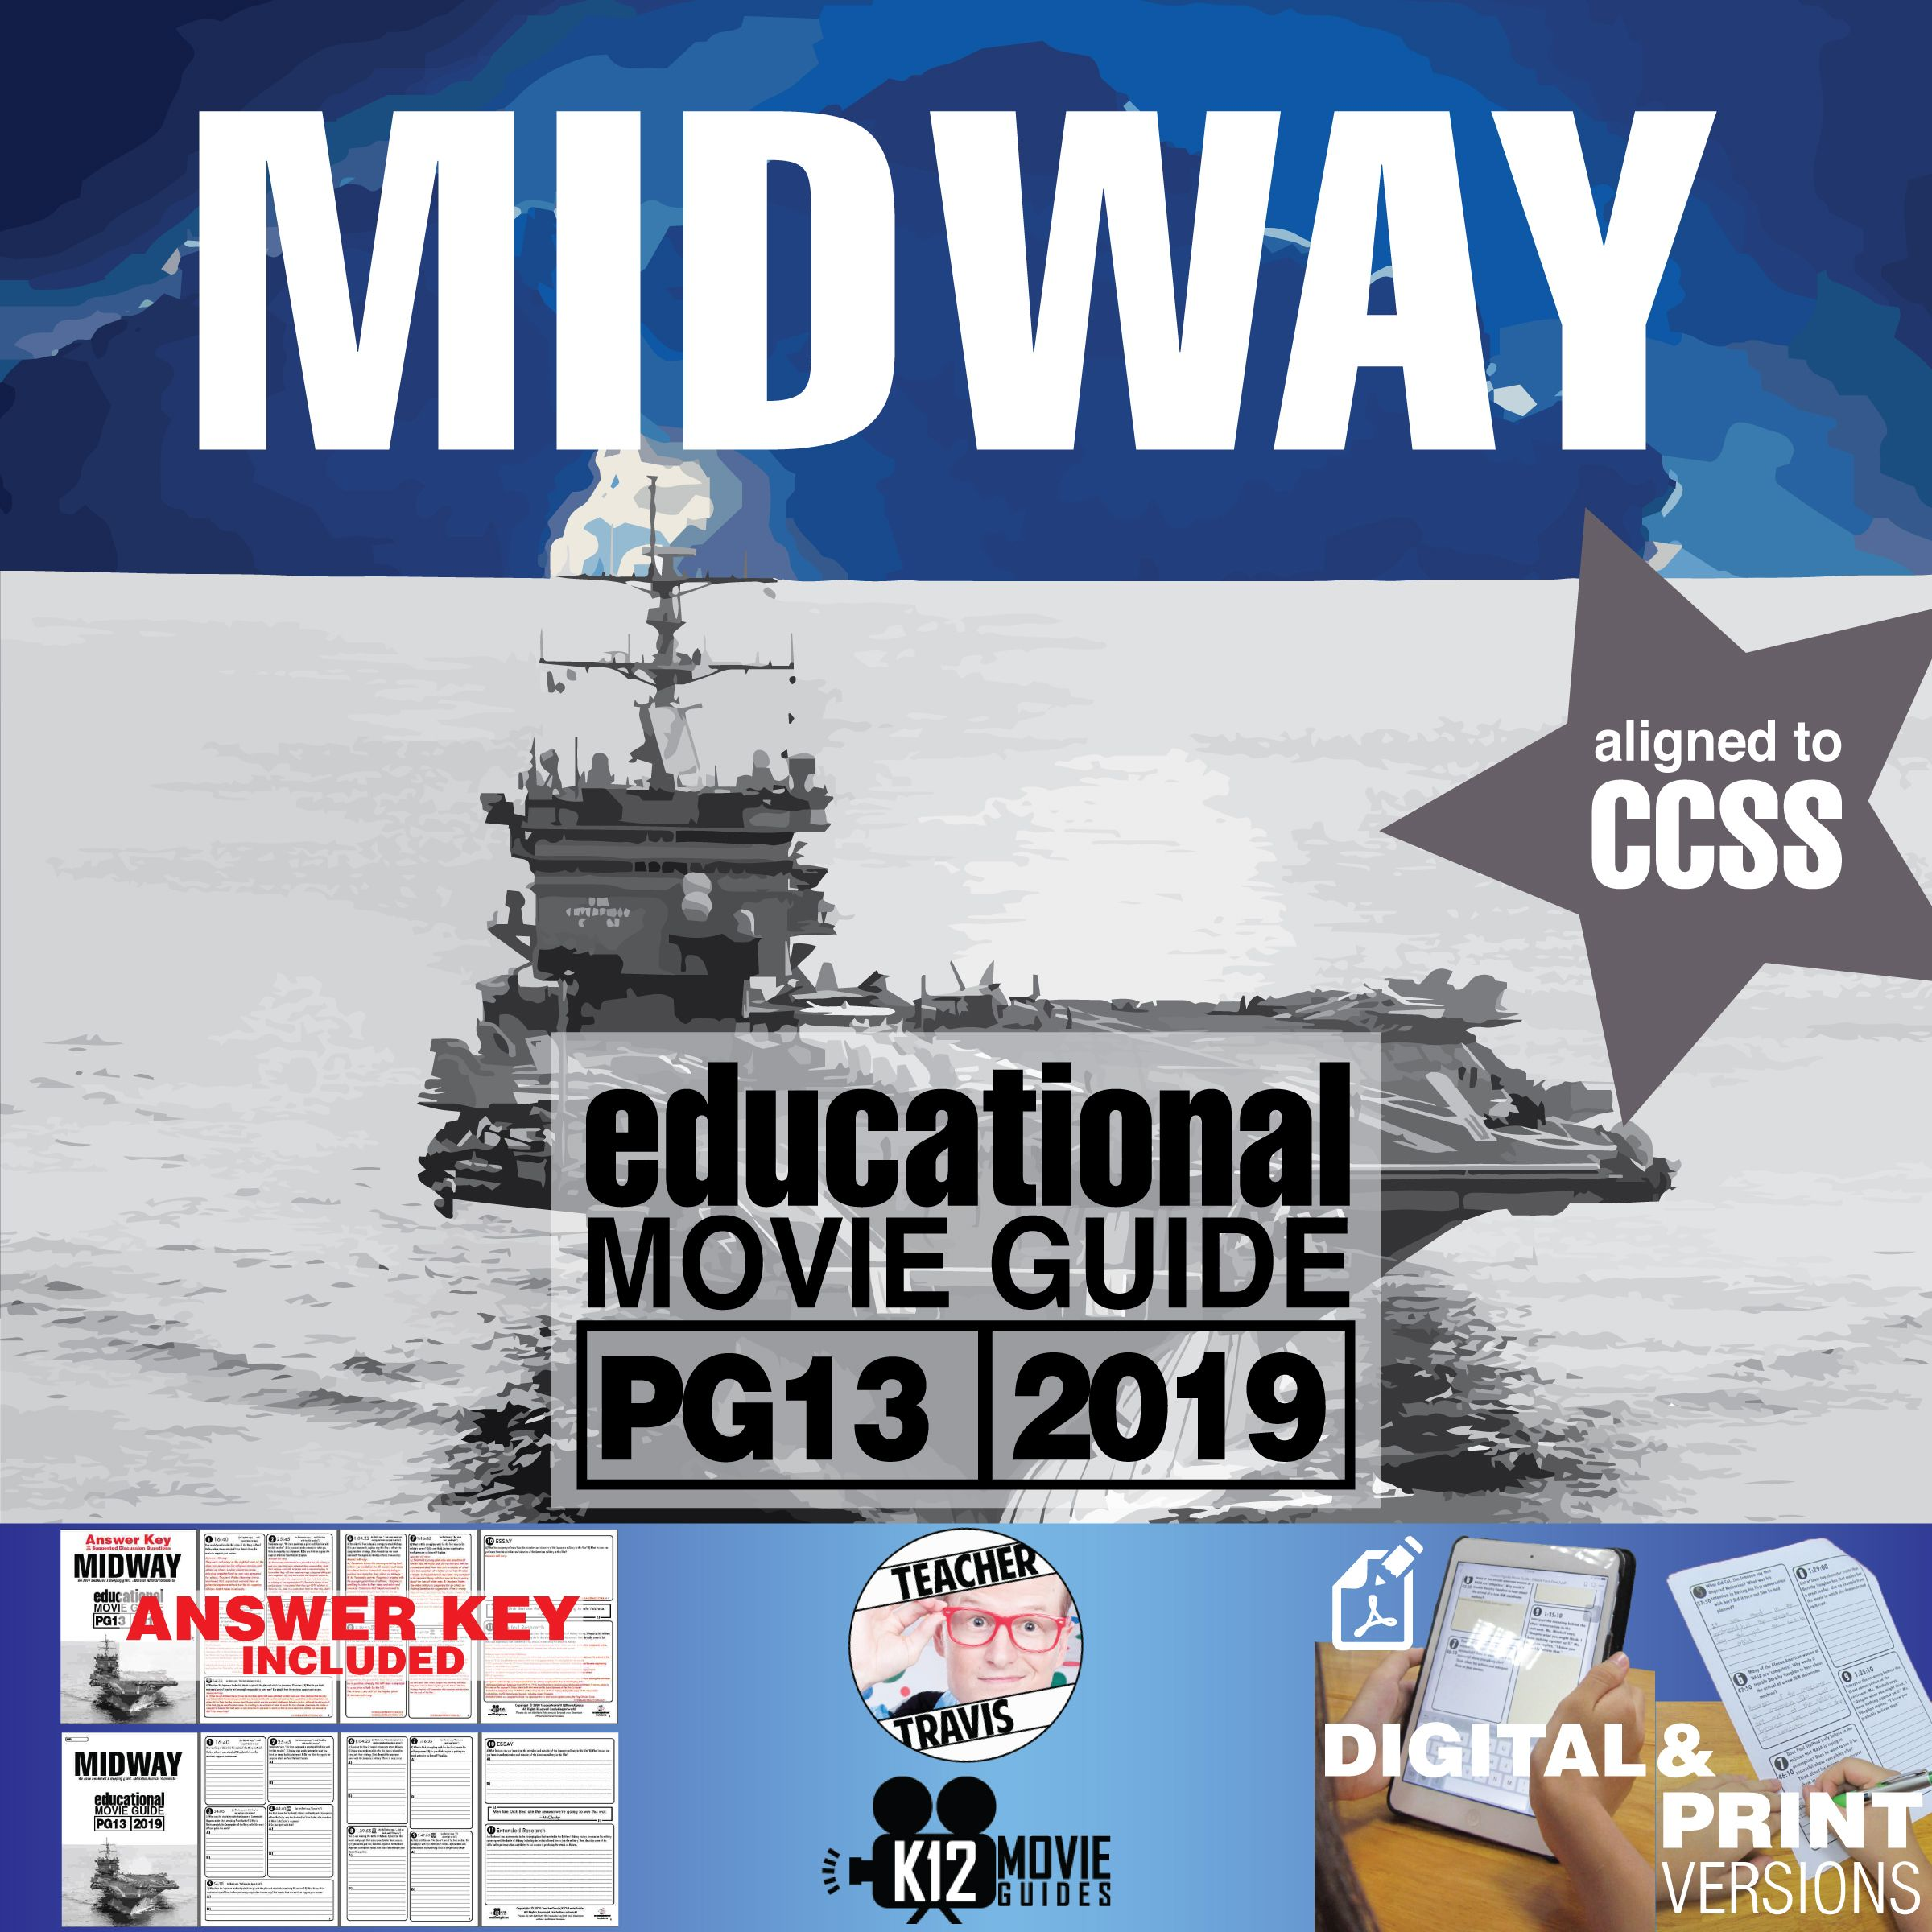 Midway Movie Guide Questions Worksheet (PG13 2019